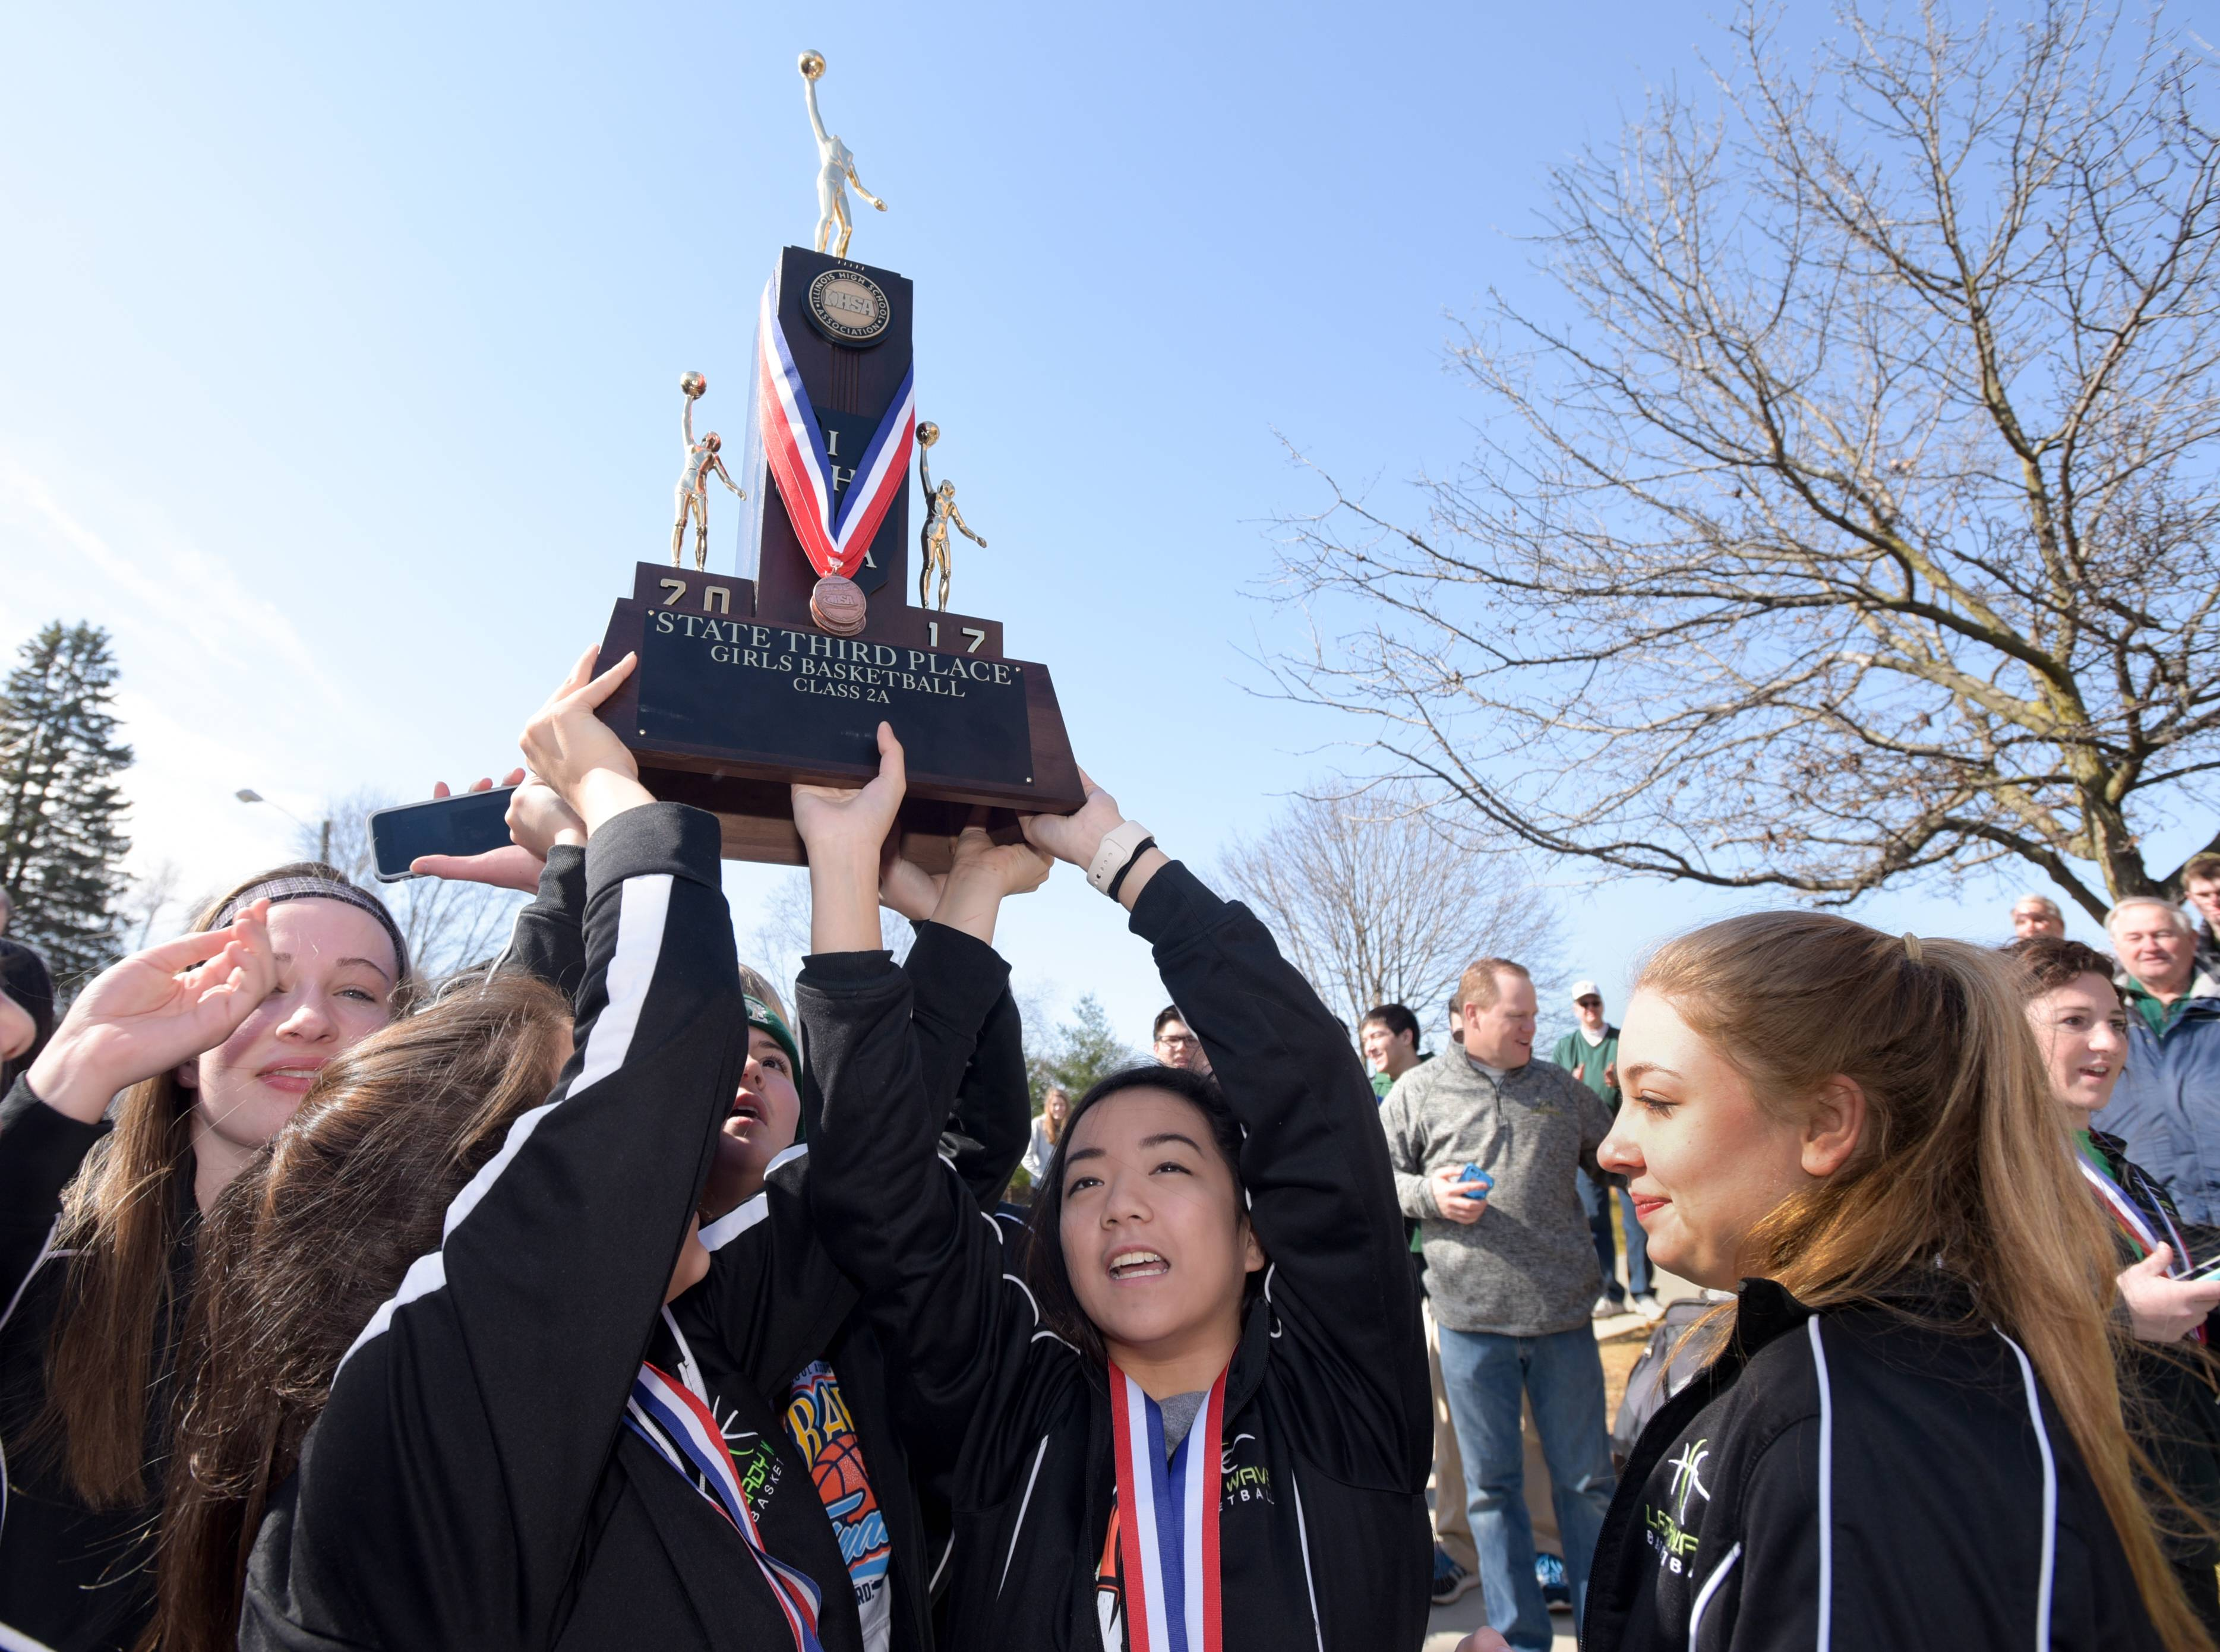 Members of the St. Edward high School girls basketball team returned to the school's Elgin campus Sunday with their trophy for finishing third in the Class 2A state tournament over the weekend.